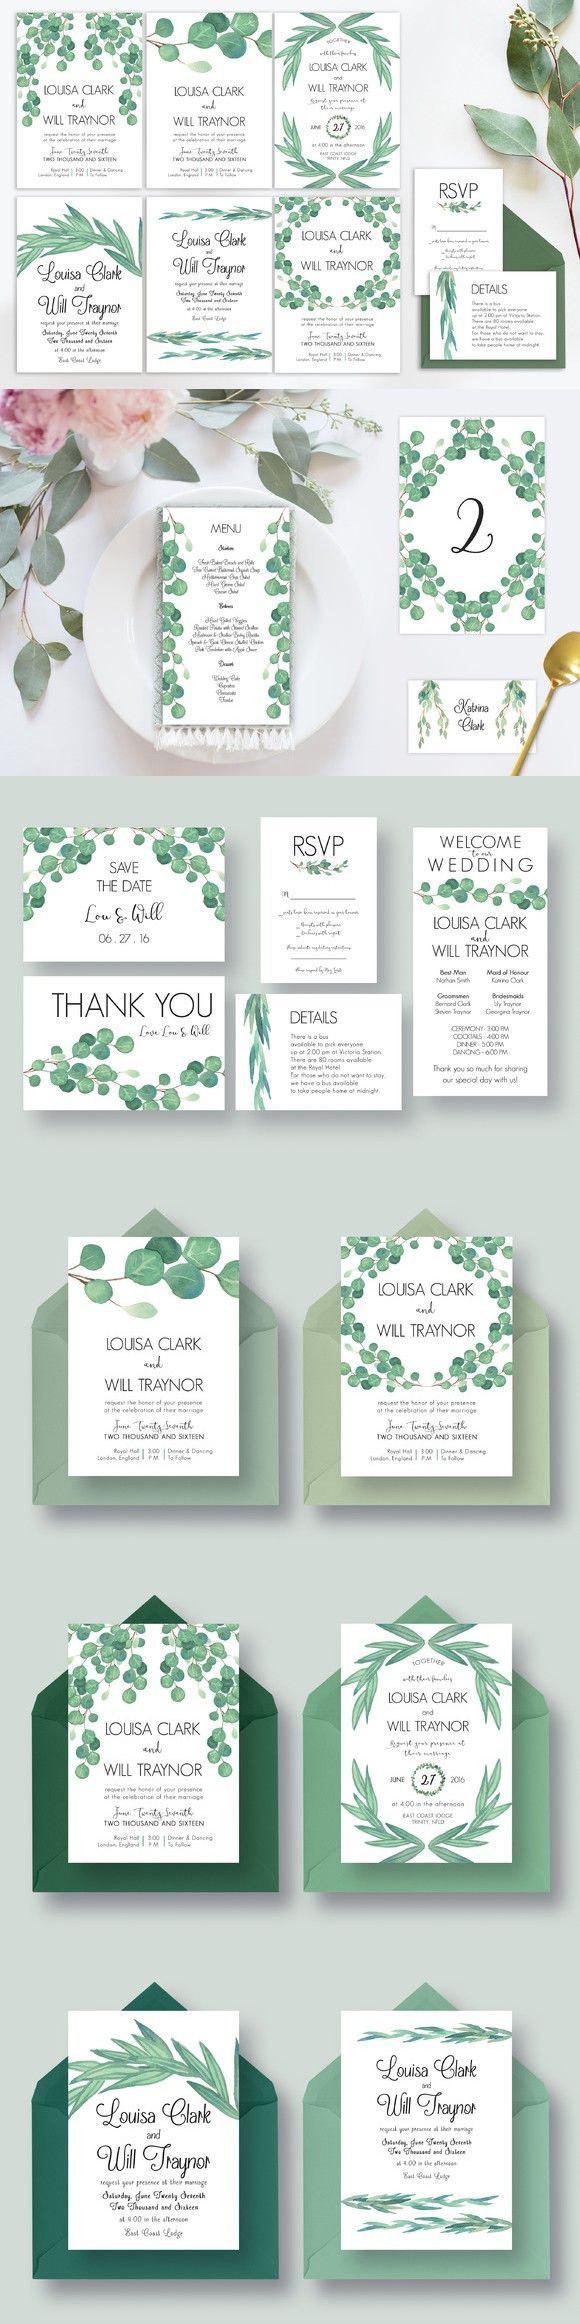 templates for wedding card design%0A Eucalyptus Wedding Suite Vol